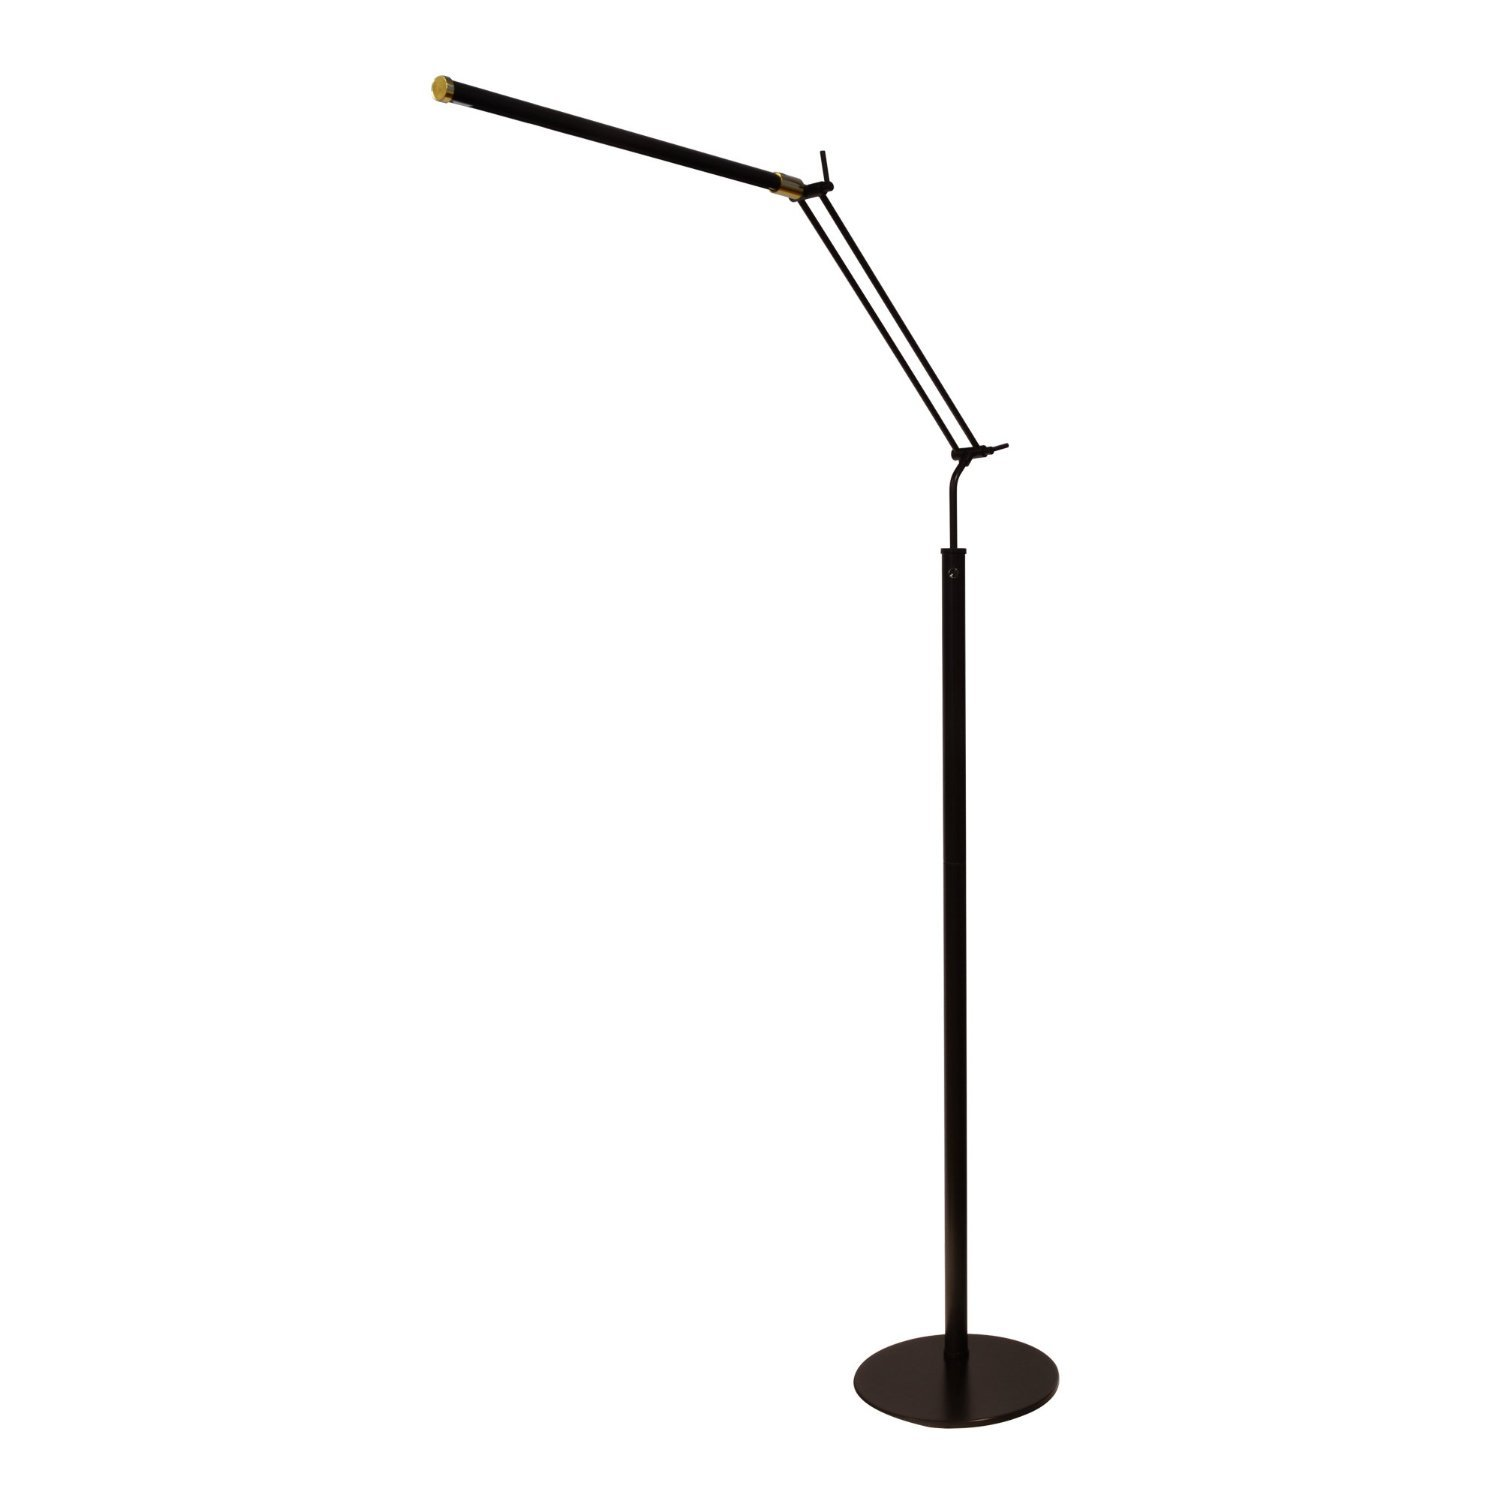 Cocoweb FLED-GPS High Powered Dimmable LED Piano Floor Lamp